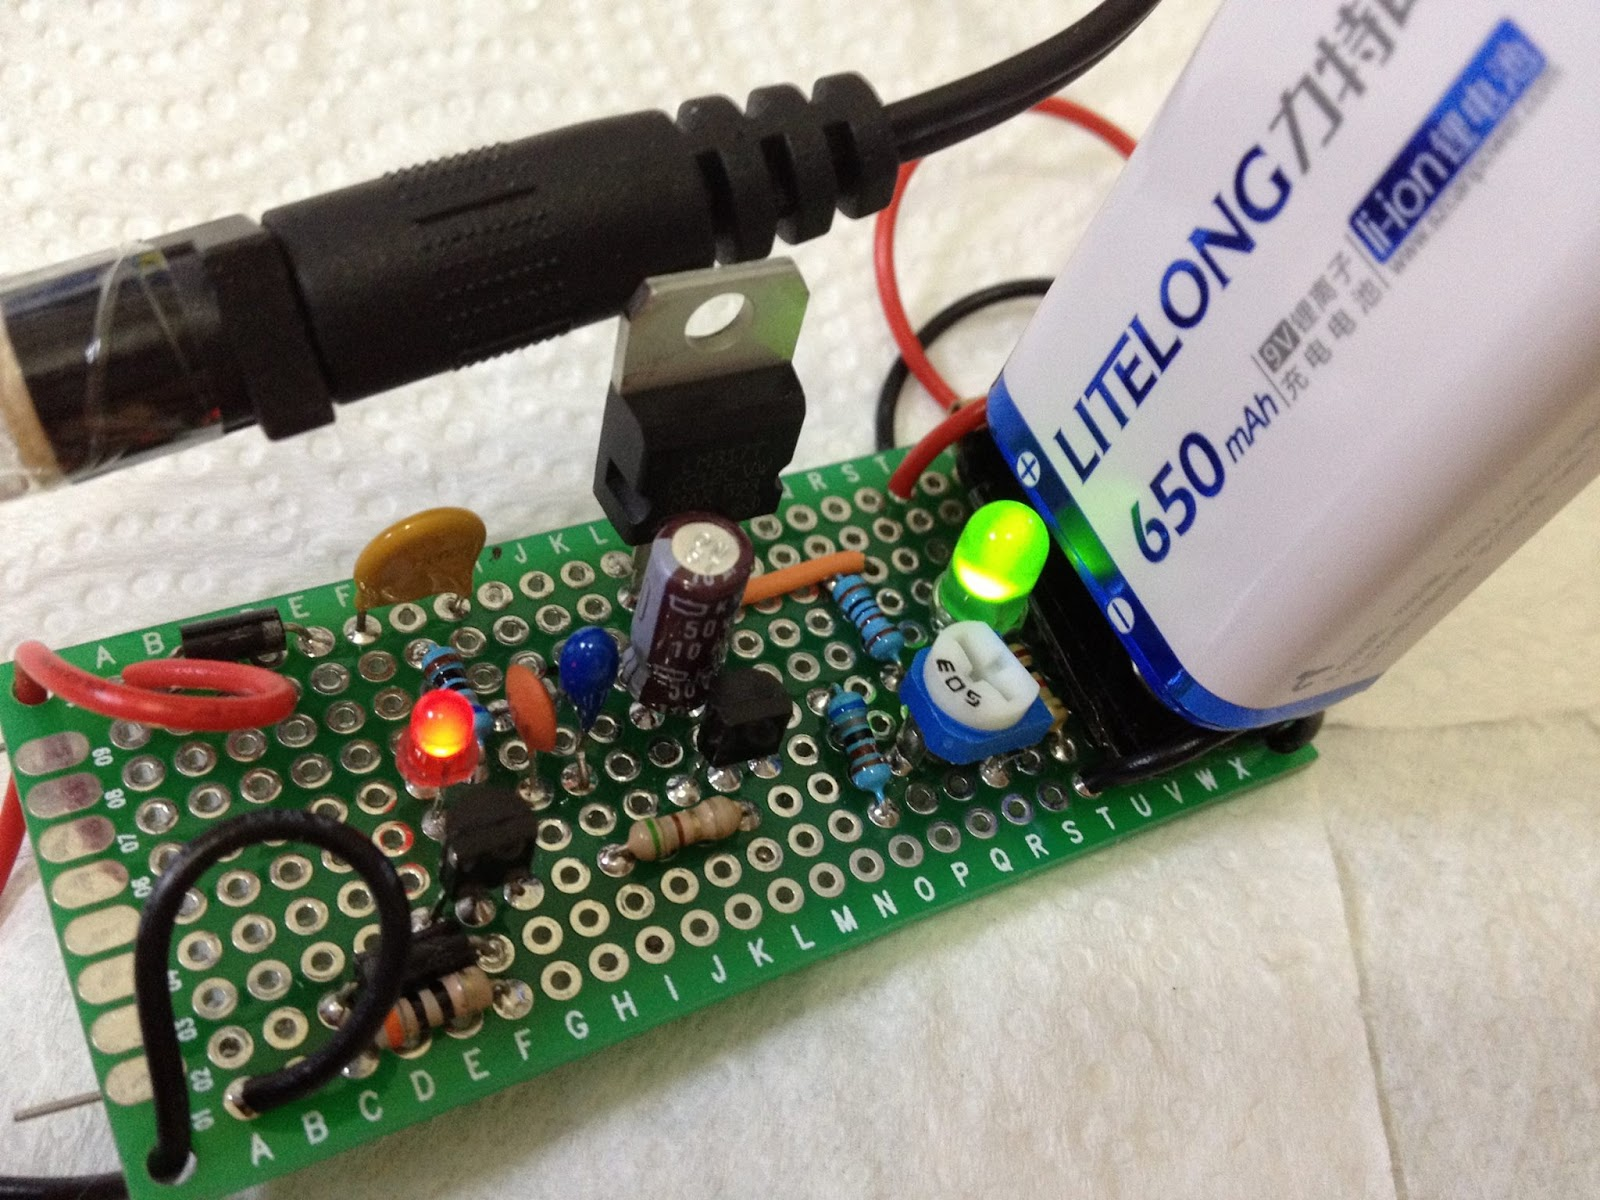 Li Ion Battery Charger Circuit Lm317 Lithium Poly Schematic Using Lm3622 Controller 8 4v